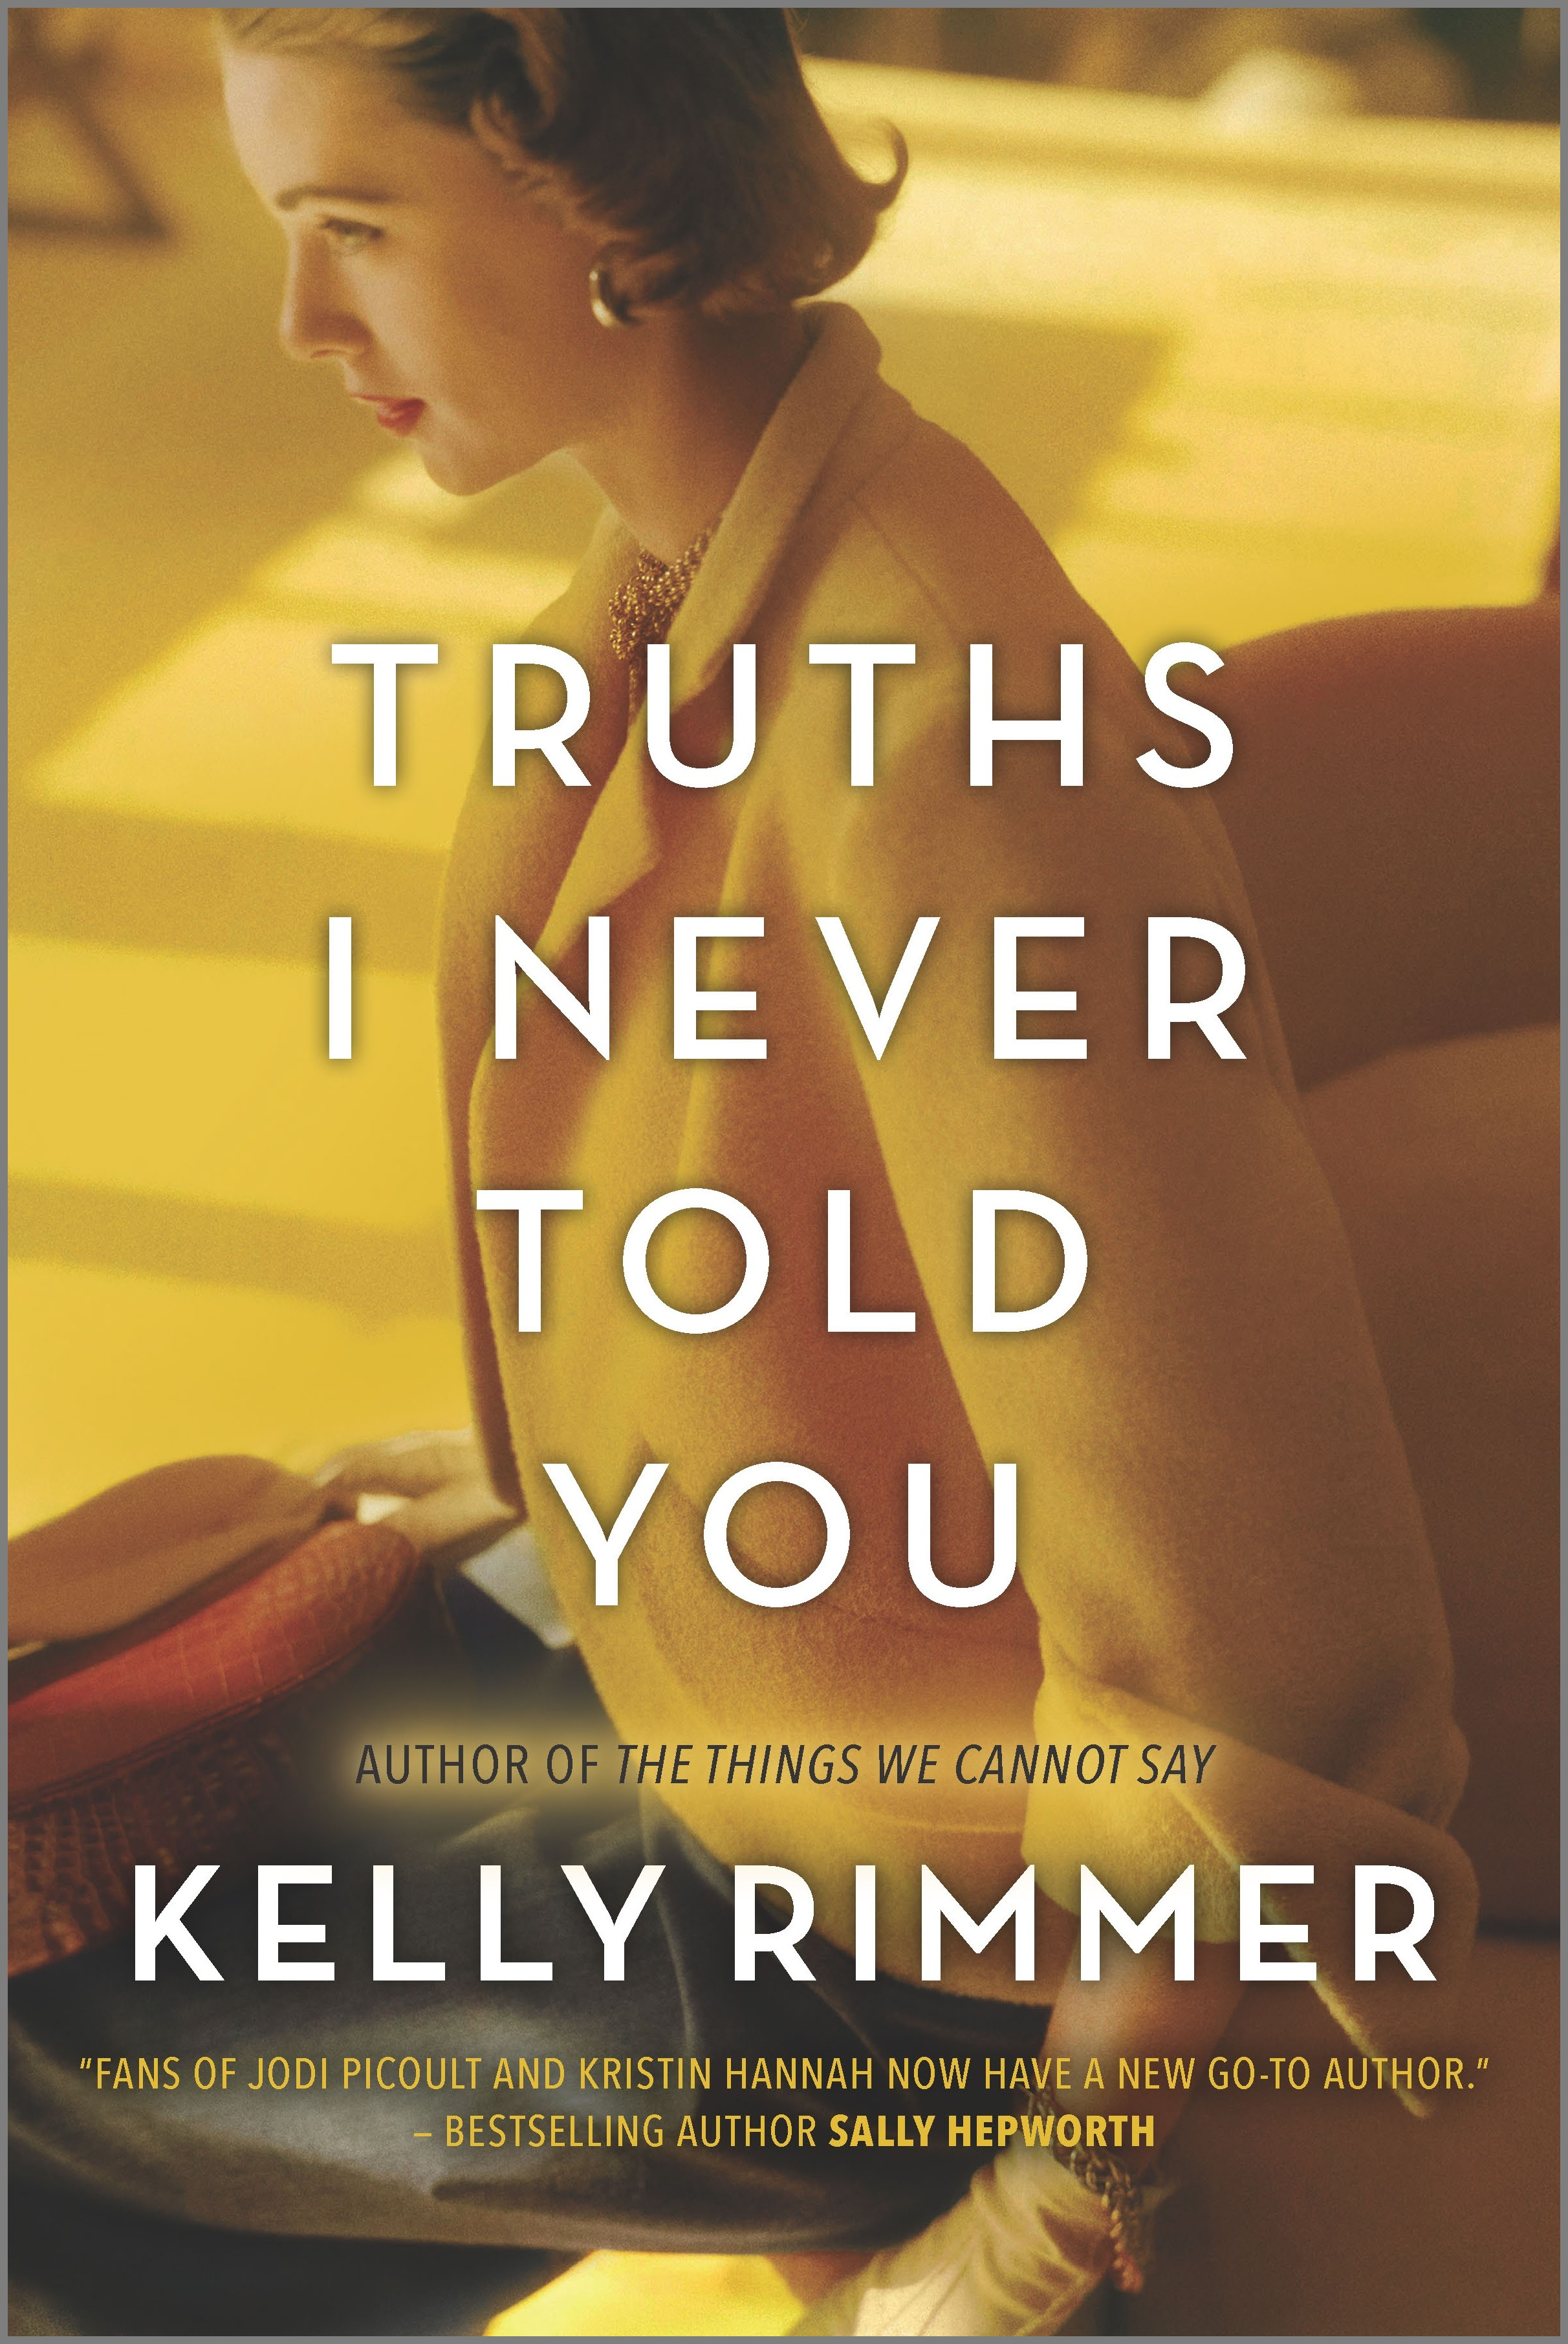 Cover Image of Truths I Never Told You